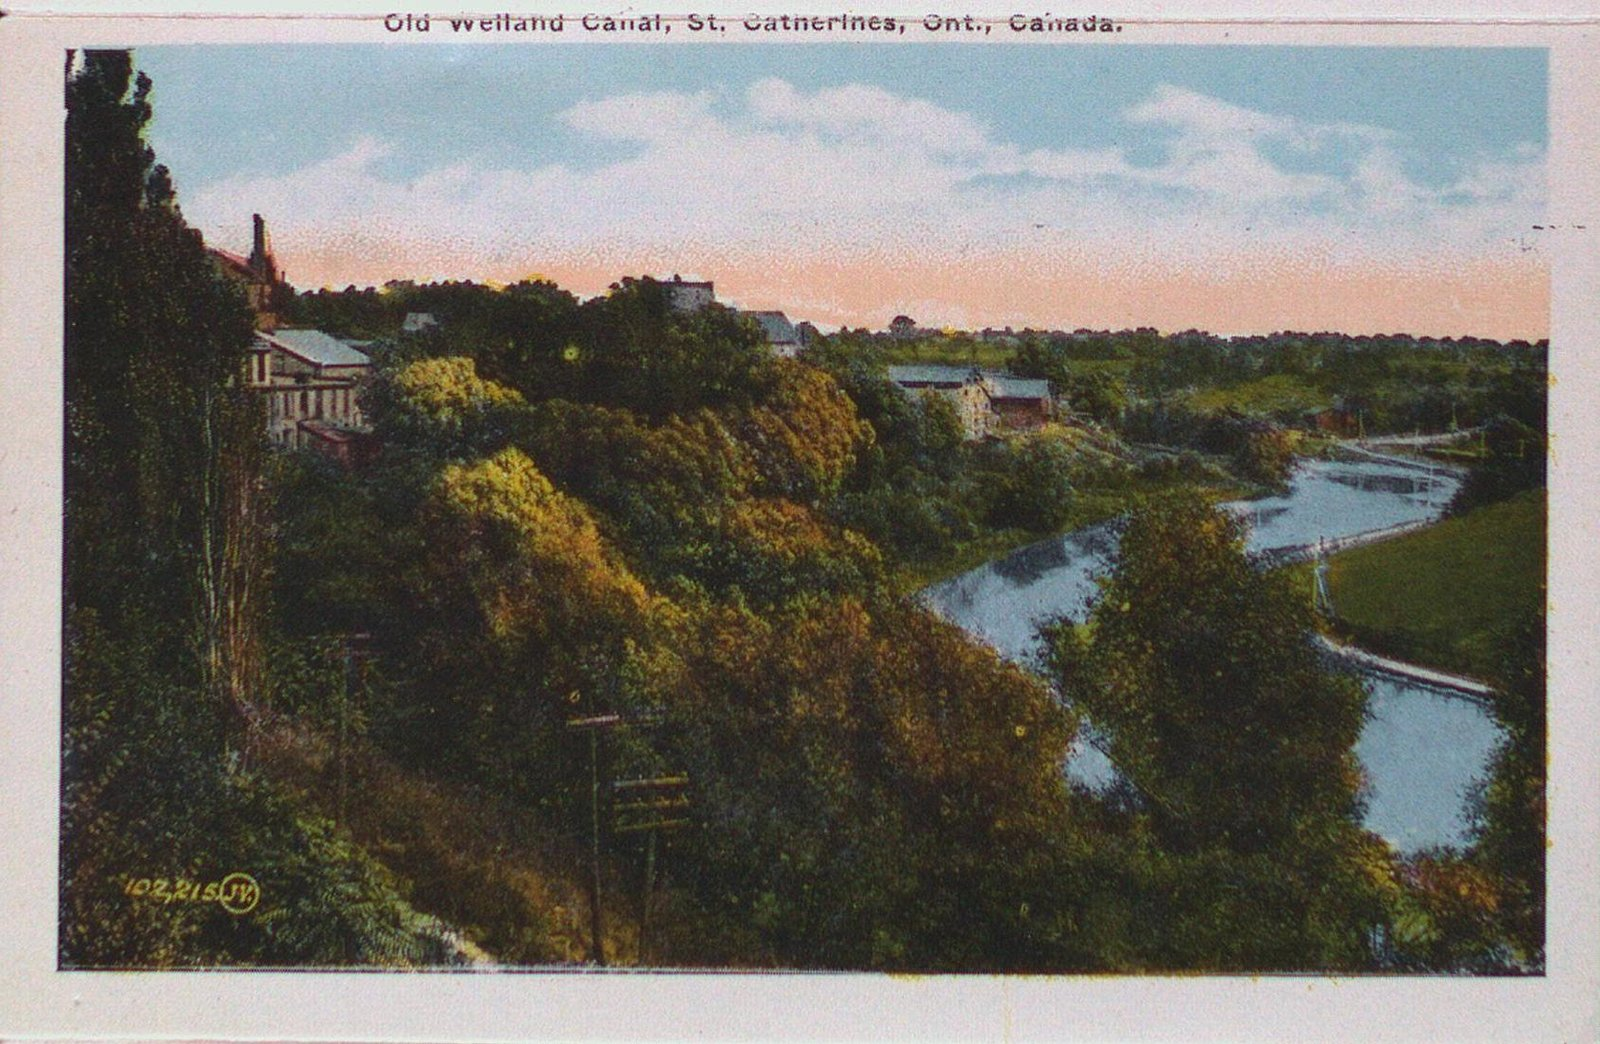 Views of St. Catharines: The Old Welland Canal